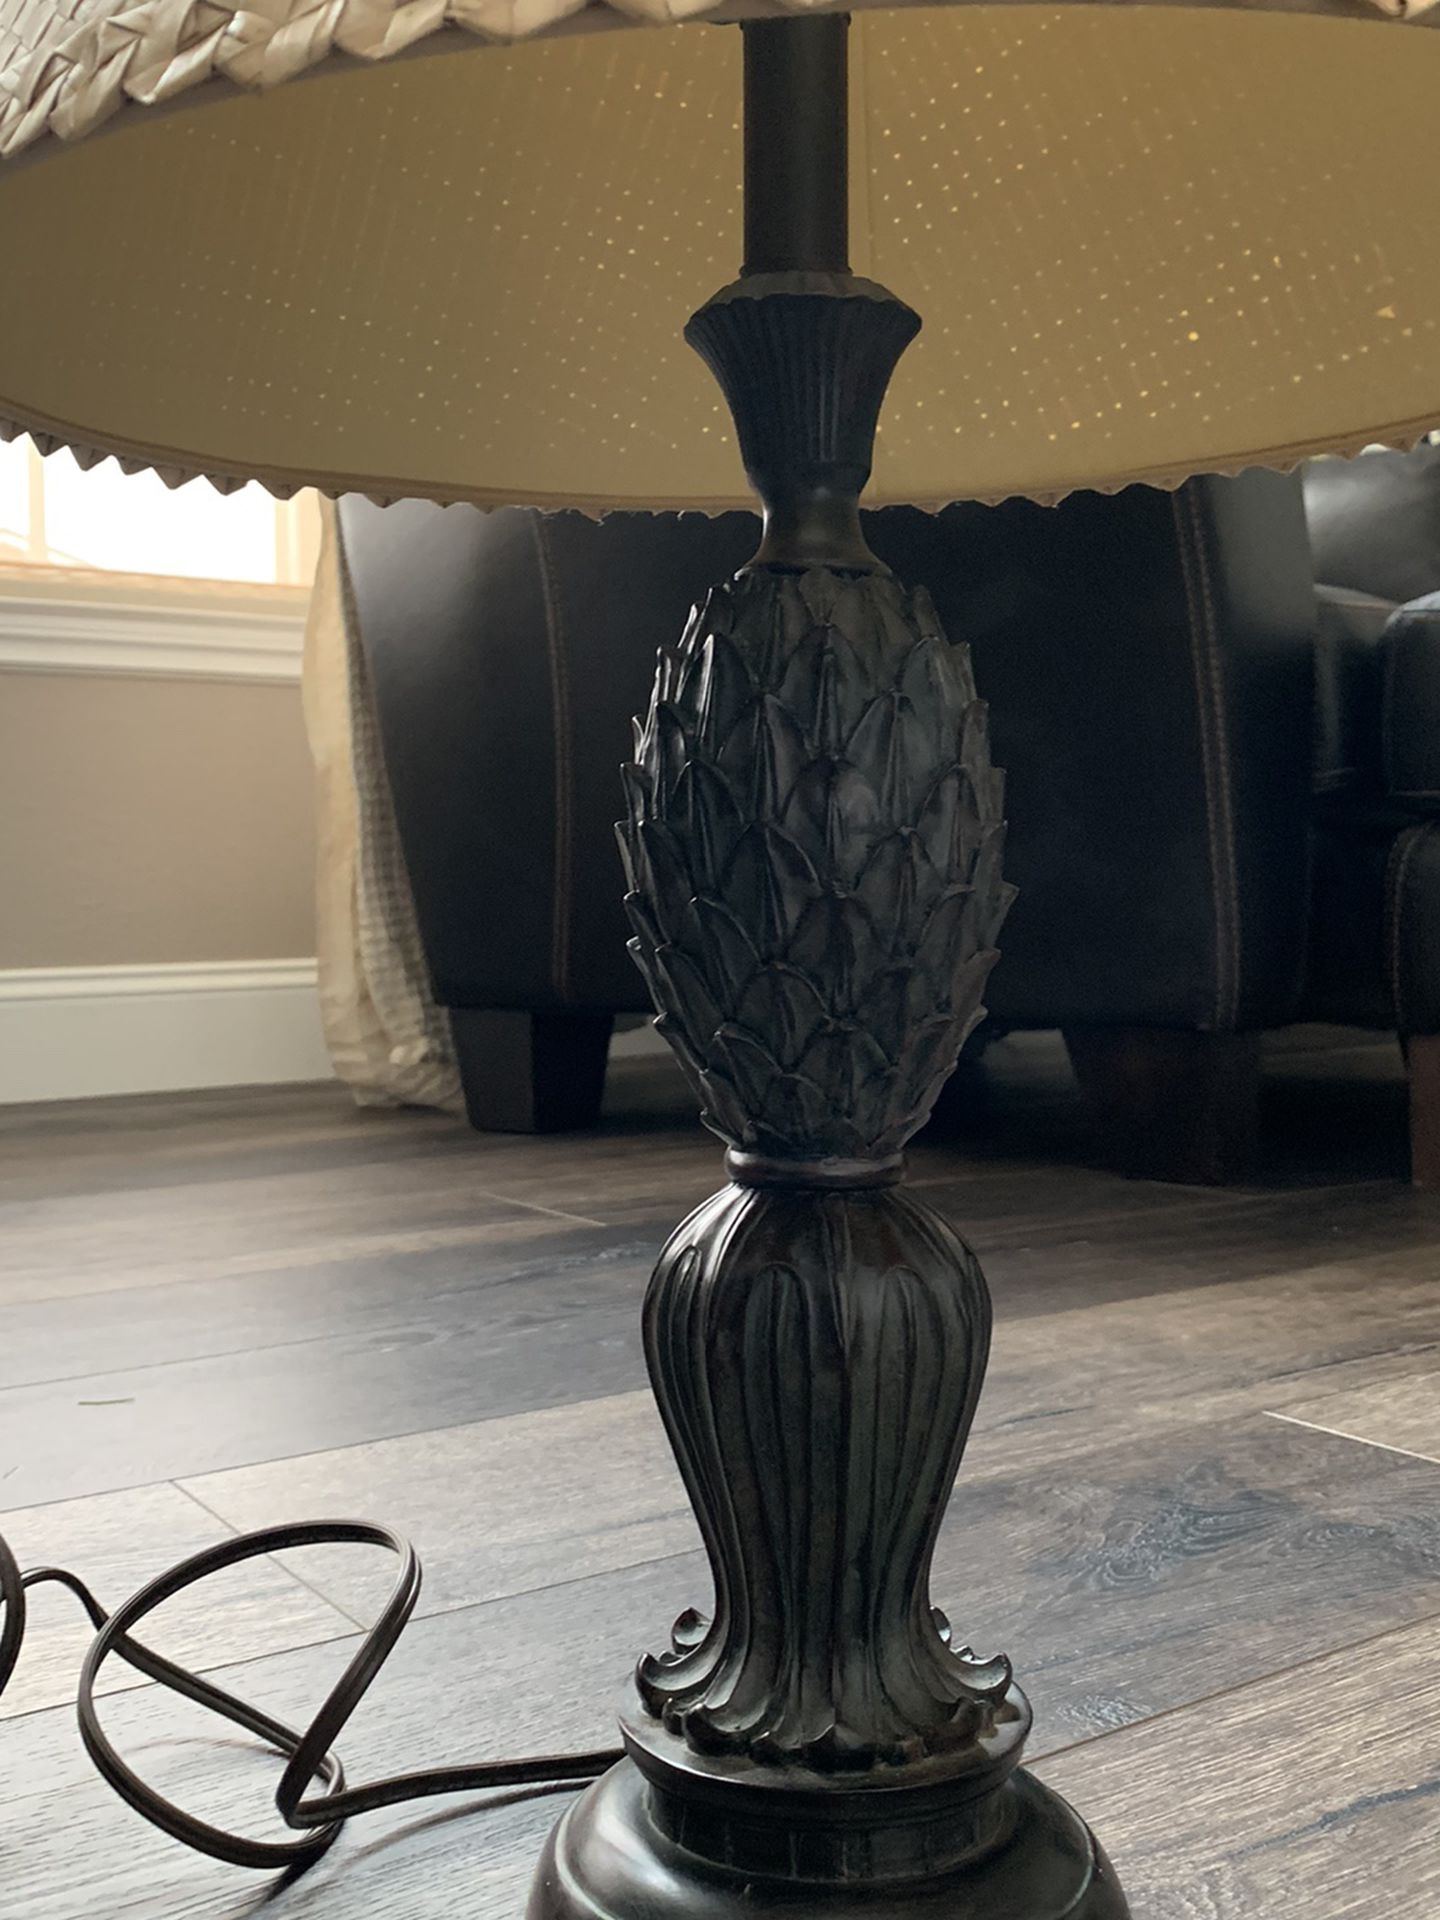 Lamp with Polynesian style shade and pineapple